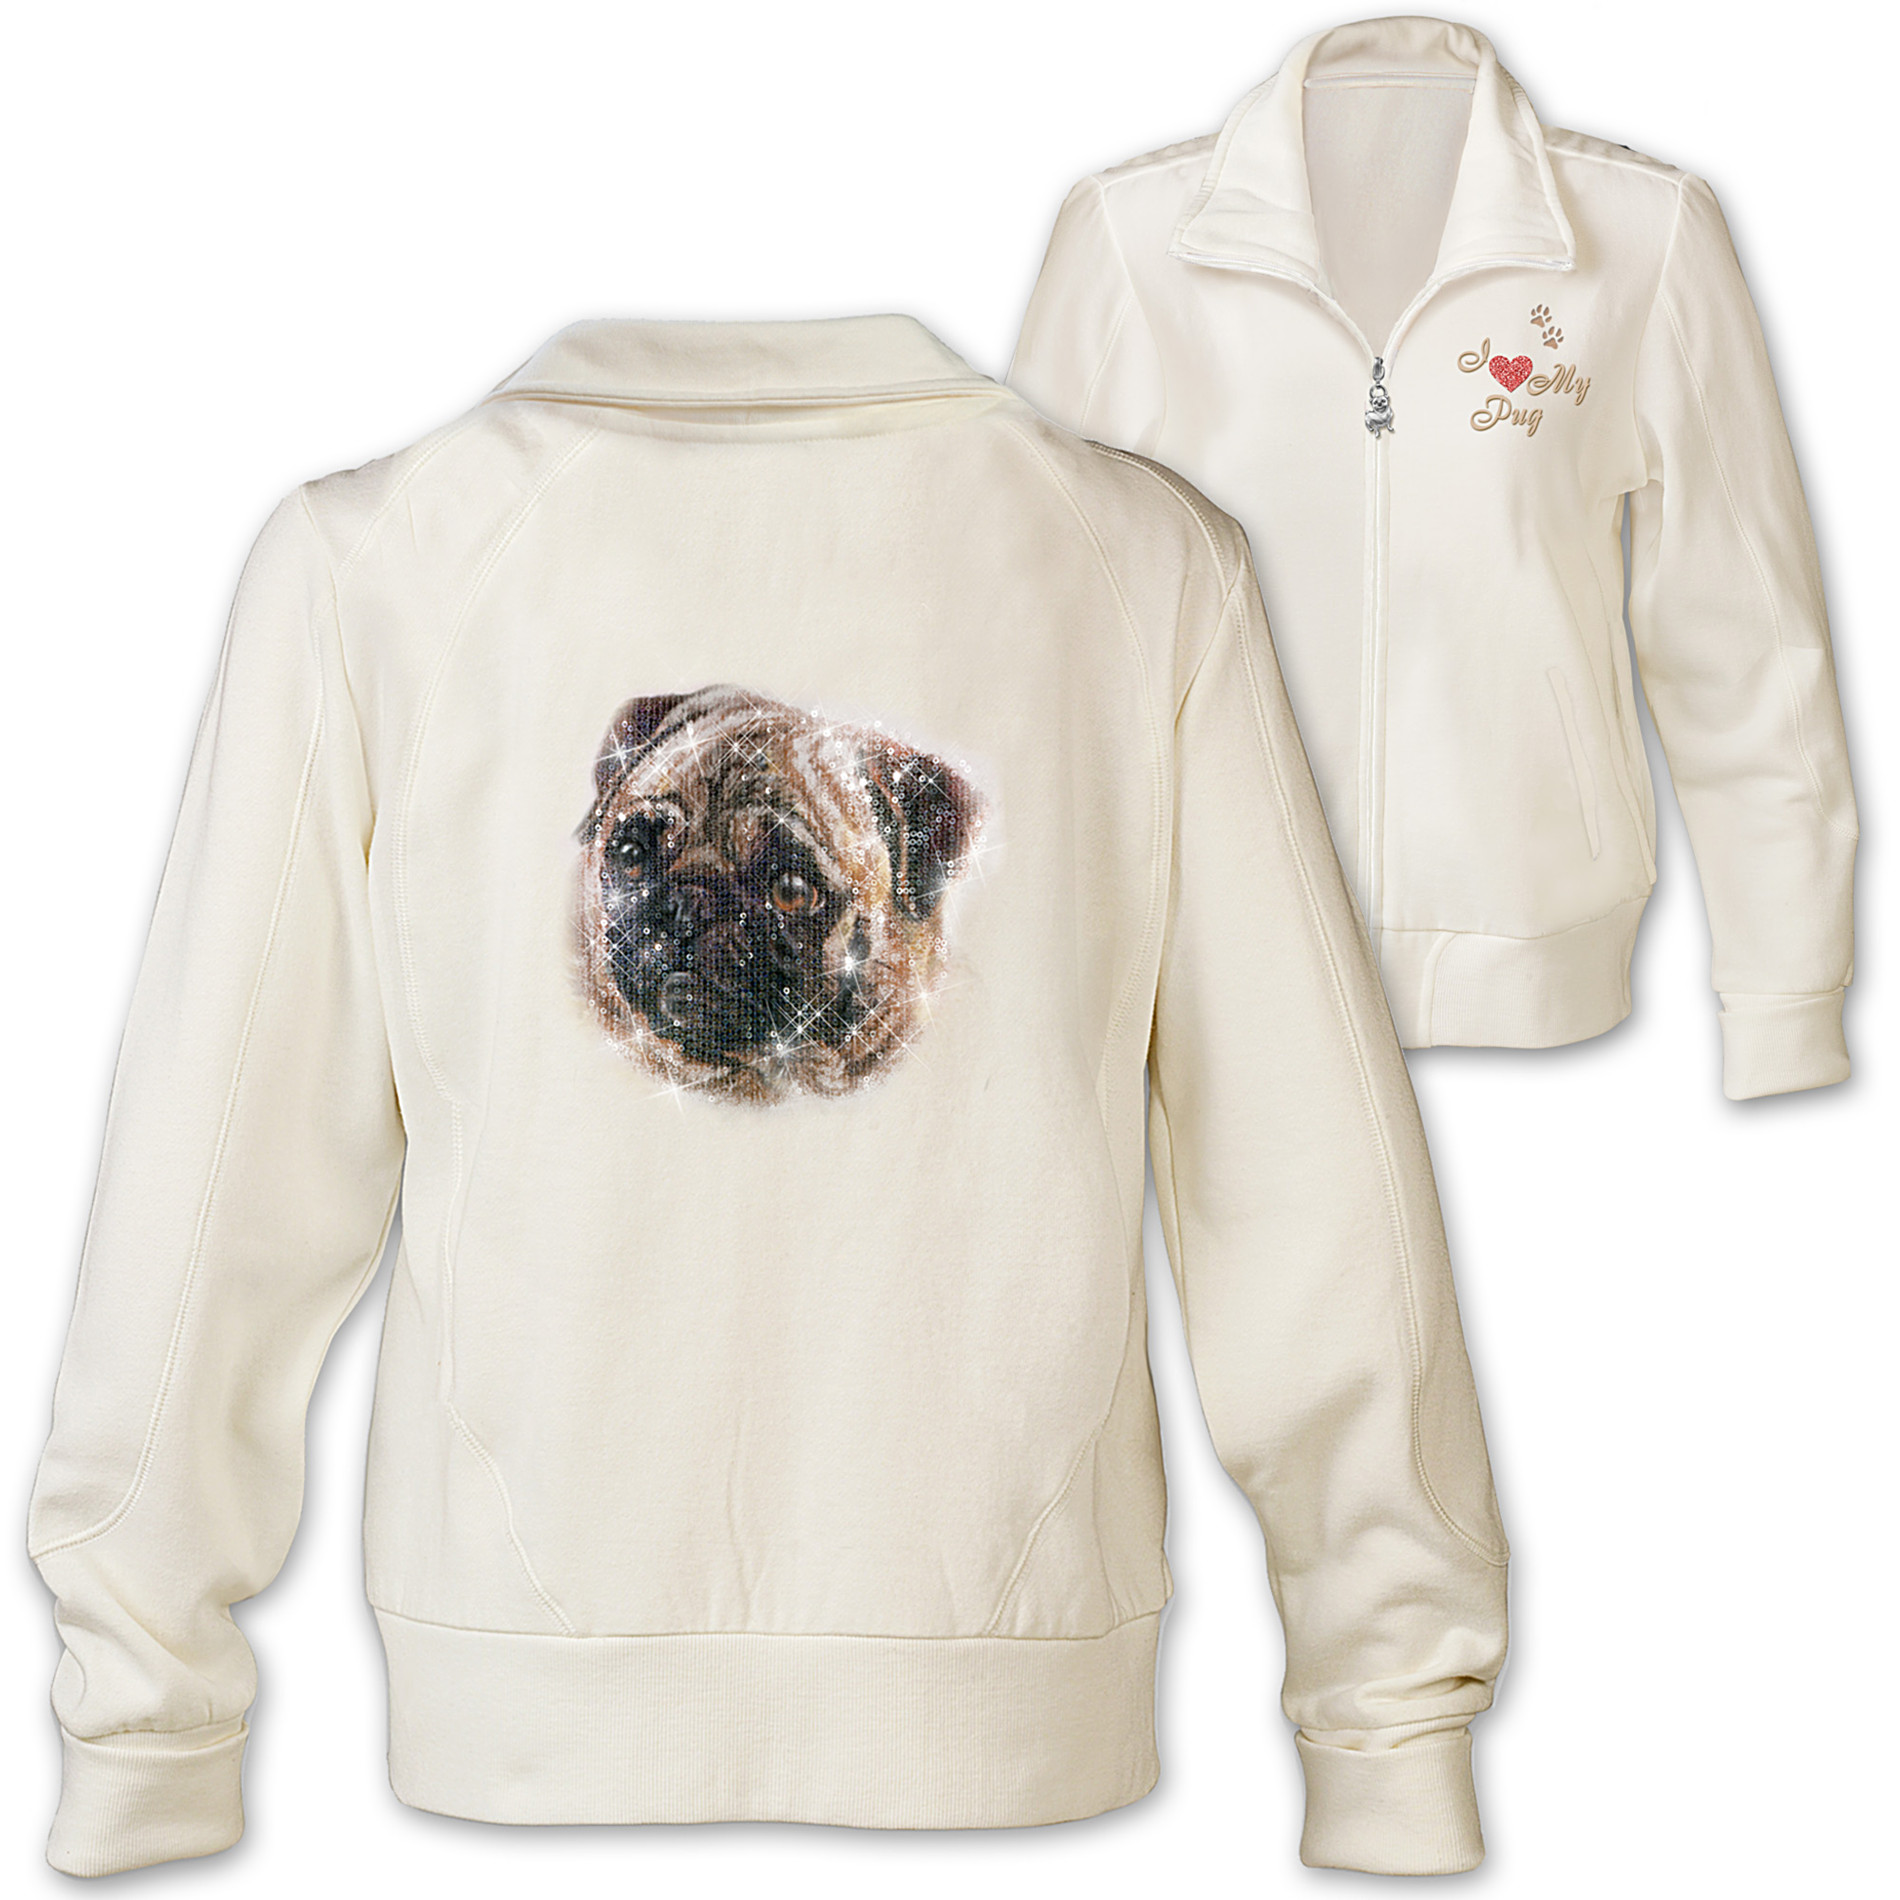 The Bradford Exchange Women's Jacket: Doggone Cute Pug at Sears.com